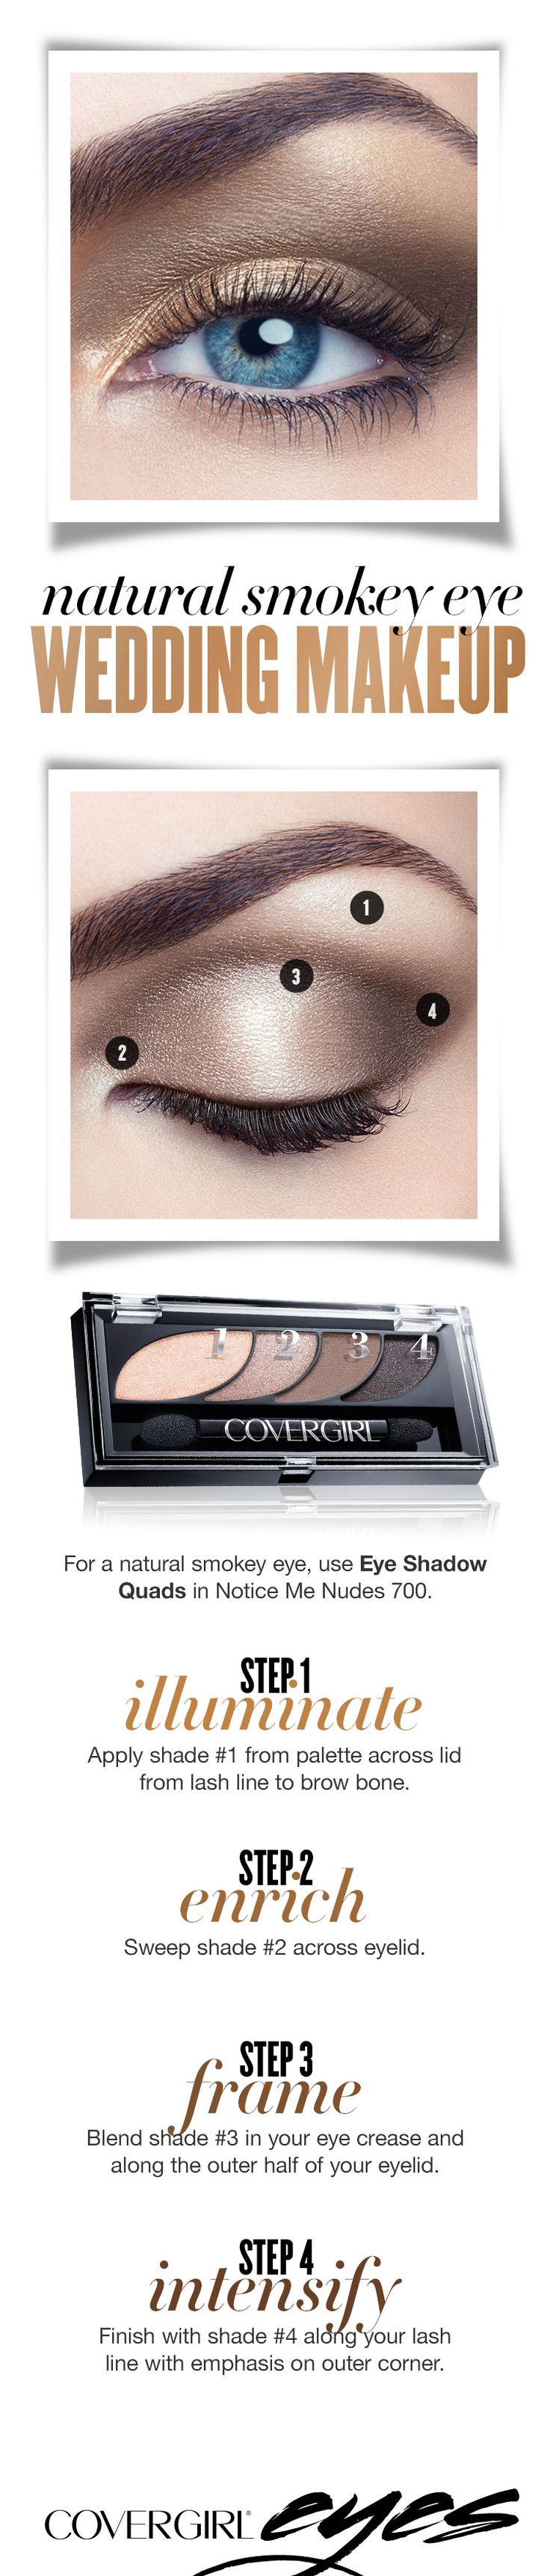 Follow this simple step-by-step guide for a natural eye makeup look on your wedding day. Go with a nude eye using COVERGIRL Eye Shadow Quads in Notice Me Nudes 700. Step 1: Illuminate. Apply shade 1 from palette across lid from lash line to brow bone. Step 2: Enrich. Sweep shade 2 across eyelid. Step 3: Frame. Blend shade 3 in your eye crease and along the outer half of your eyelid. Step 4: Intensify. Finish with shade 4 along your lash line with emphasis on outer corner.